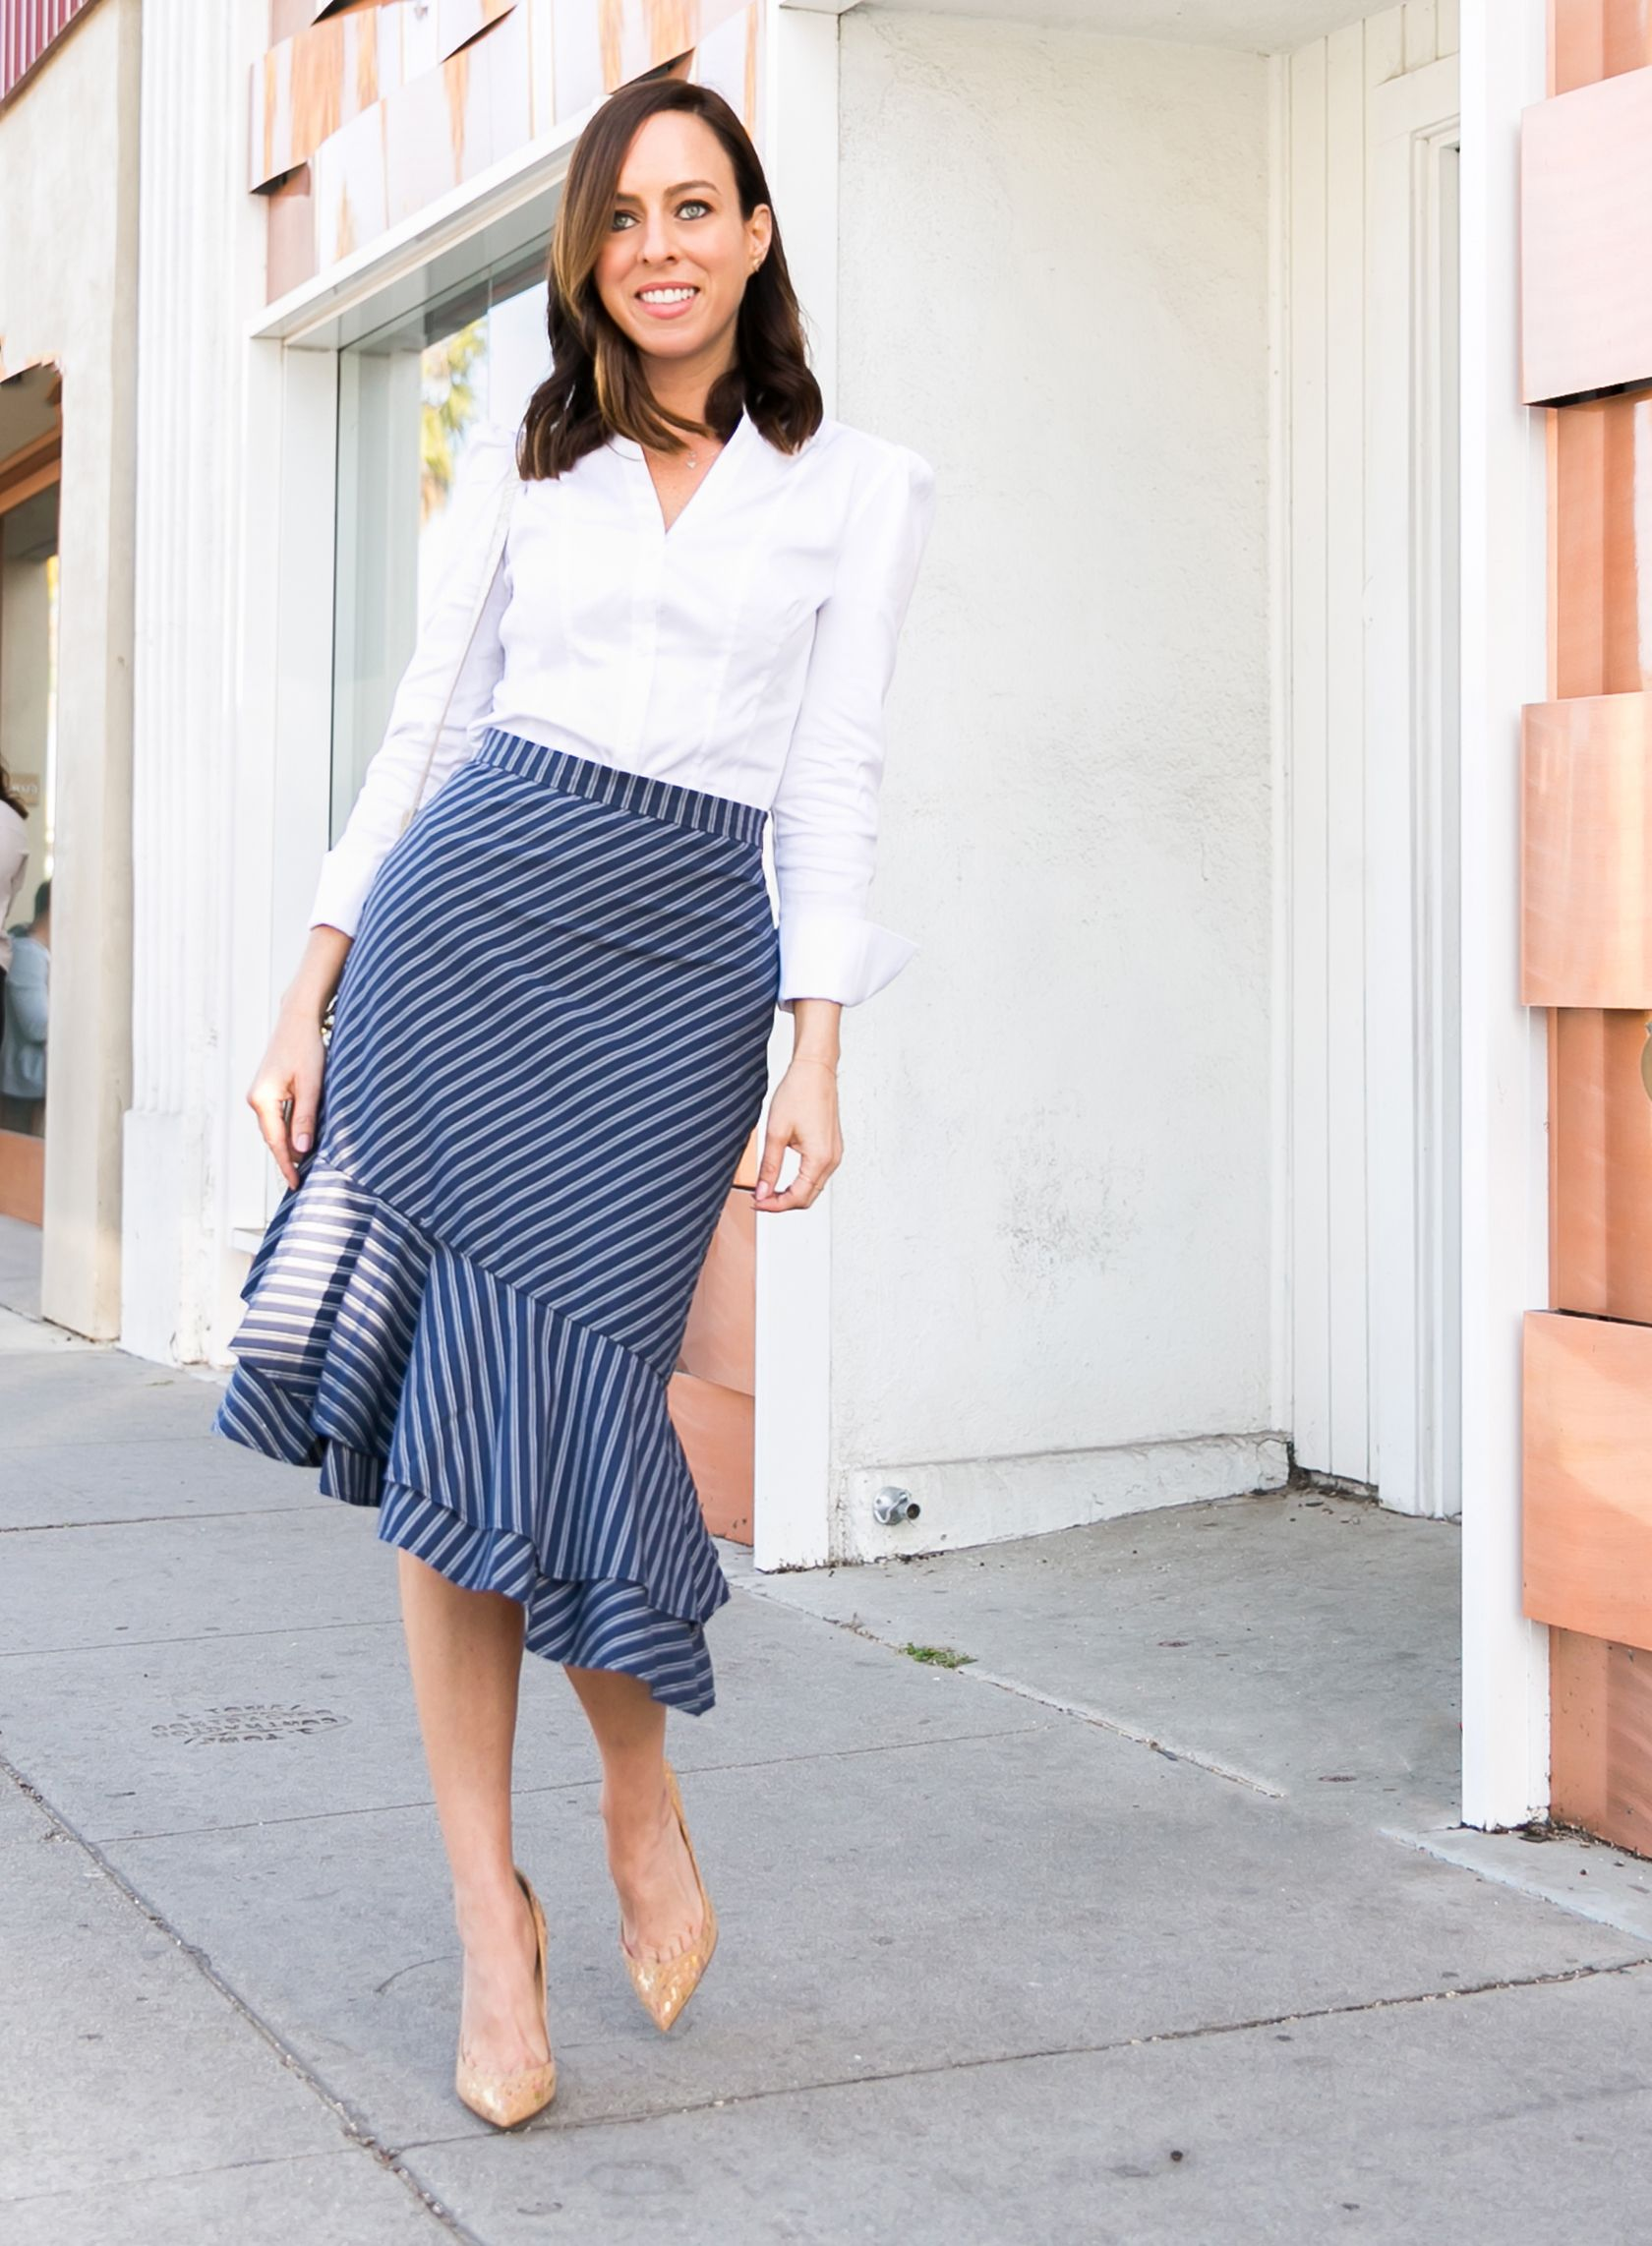 b86e690a23 Sydne Style shows office outfit ideas in white button down shirt and joie  stripe skirt #stripe #skirts #prints #ruffles #louboutin